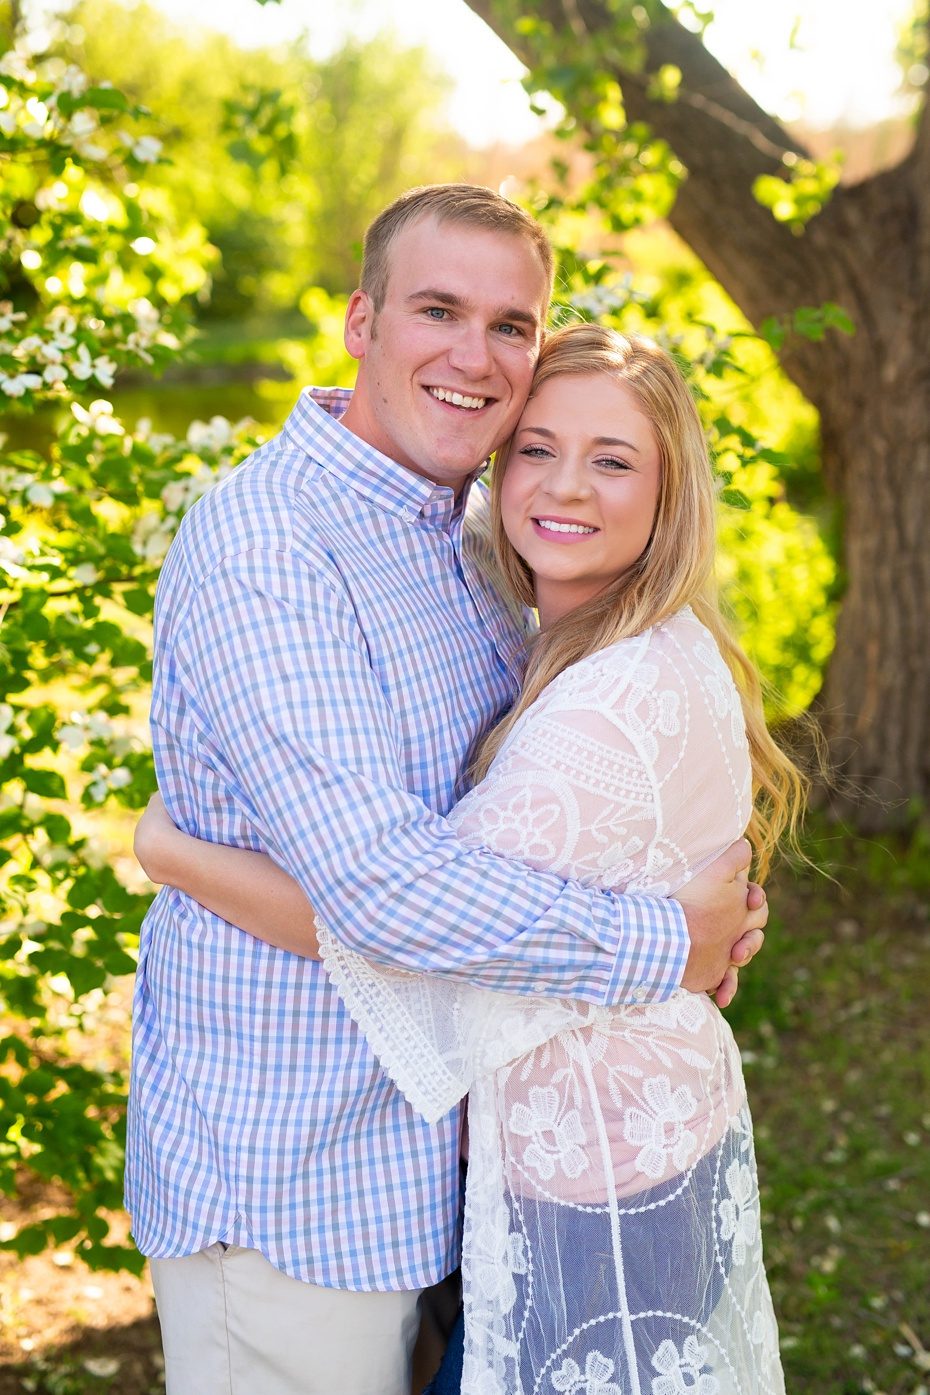 engagement_truly_you_photography_enid_photographer-1_web-1.jpg